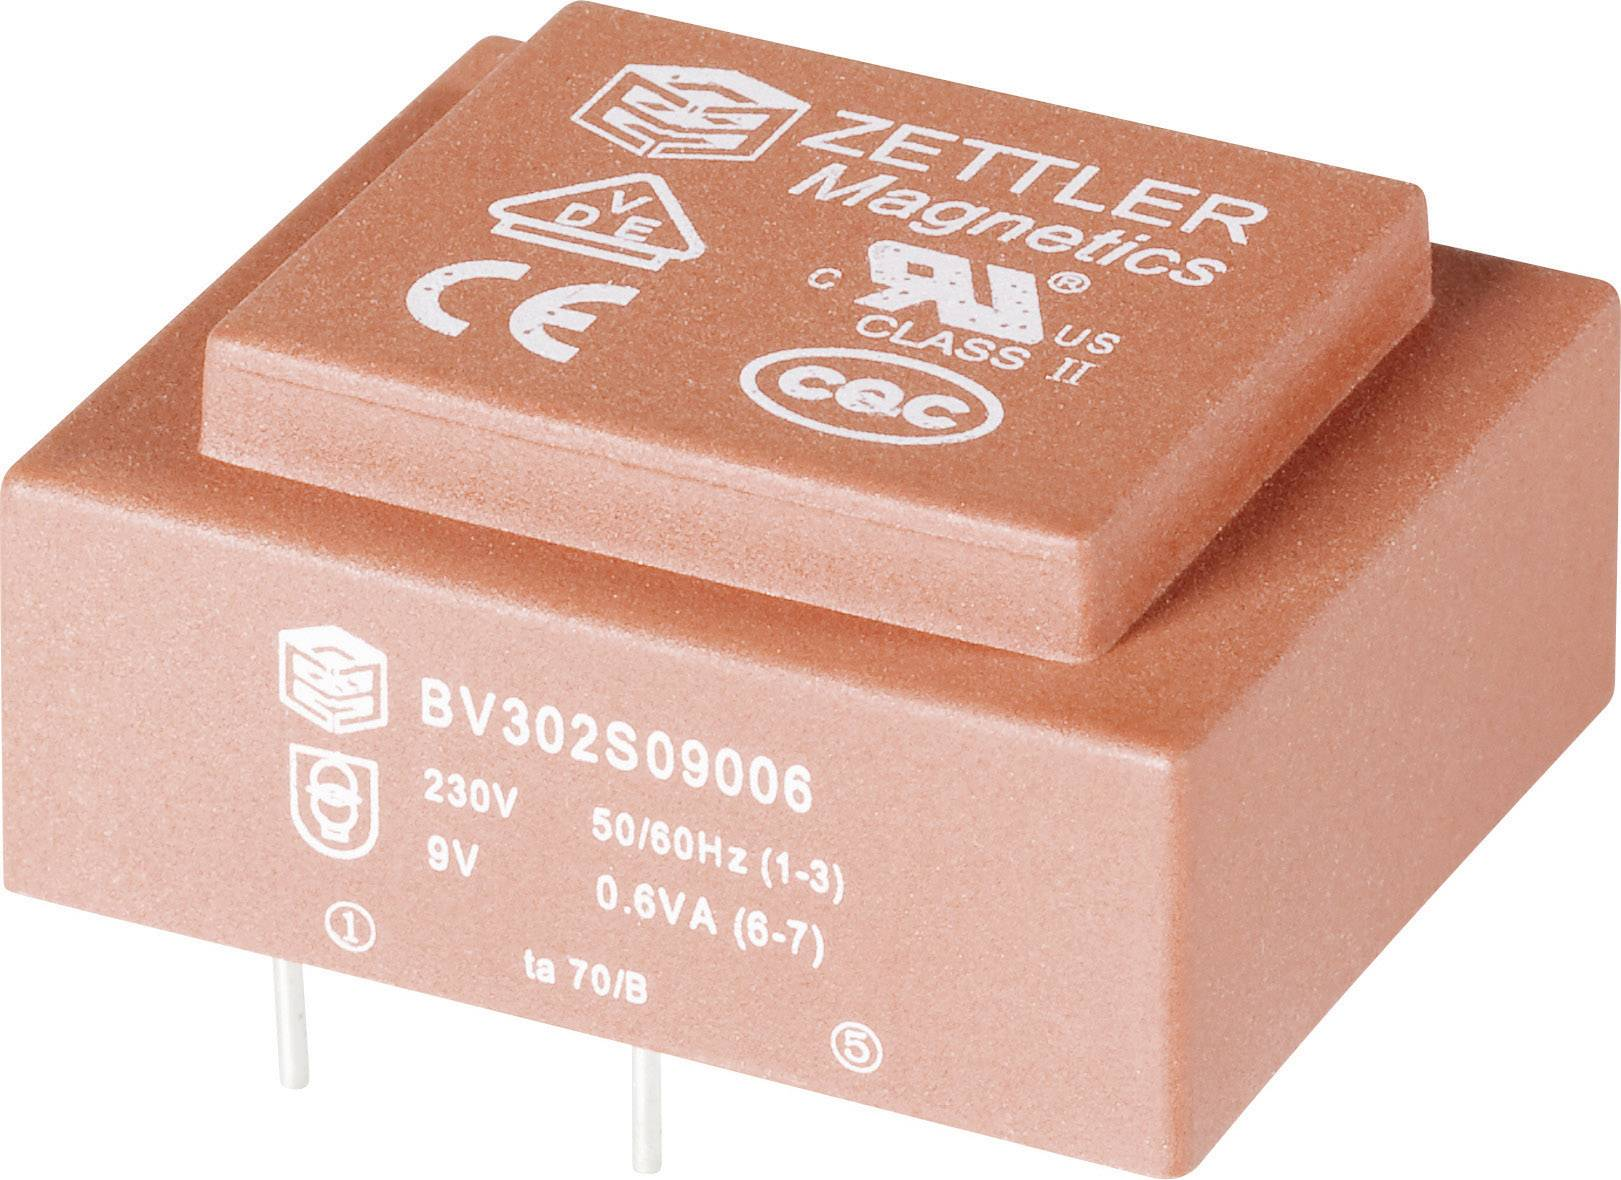 Transformátor do DPS Zettler Magnetics El30, 230 V/15 V, 40 mA, 2 VA